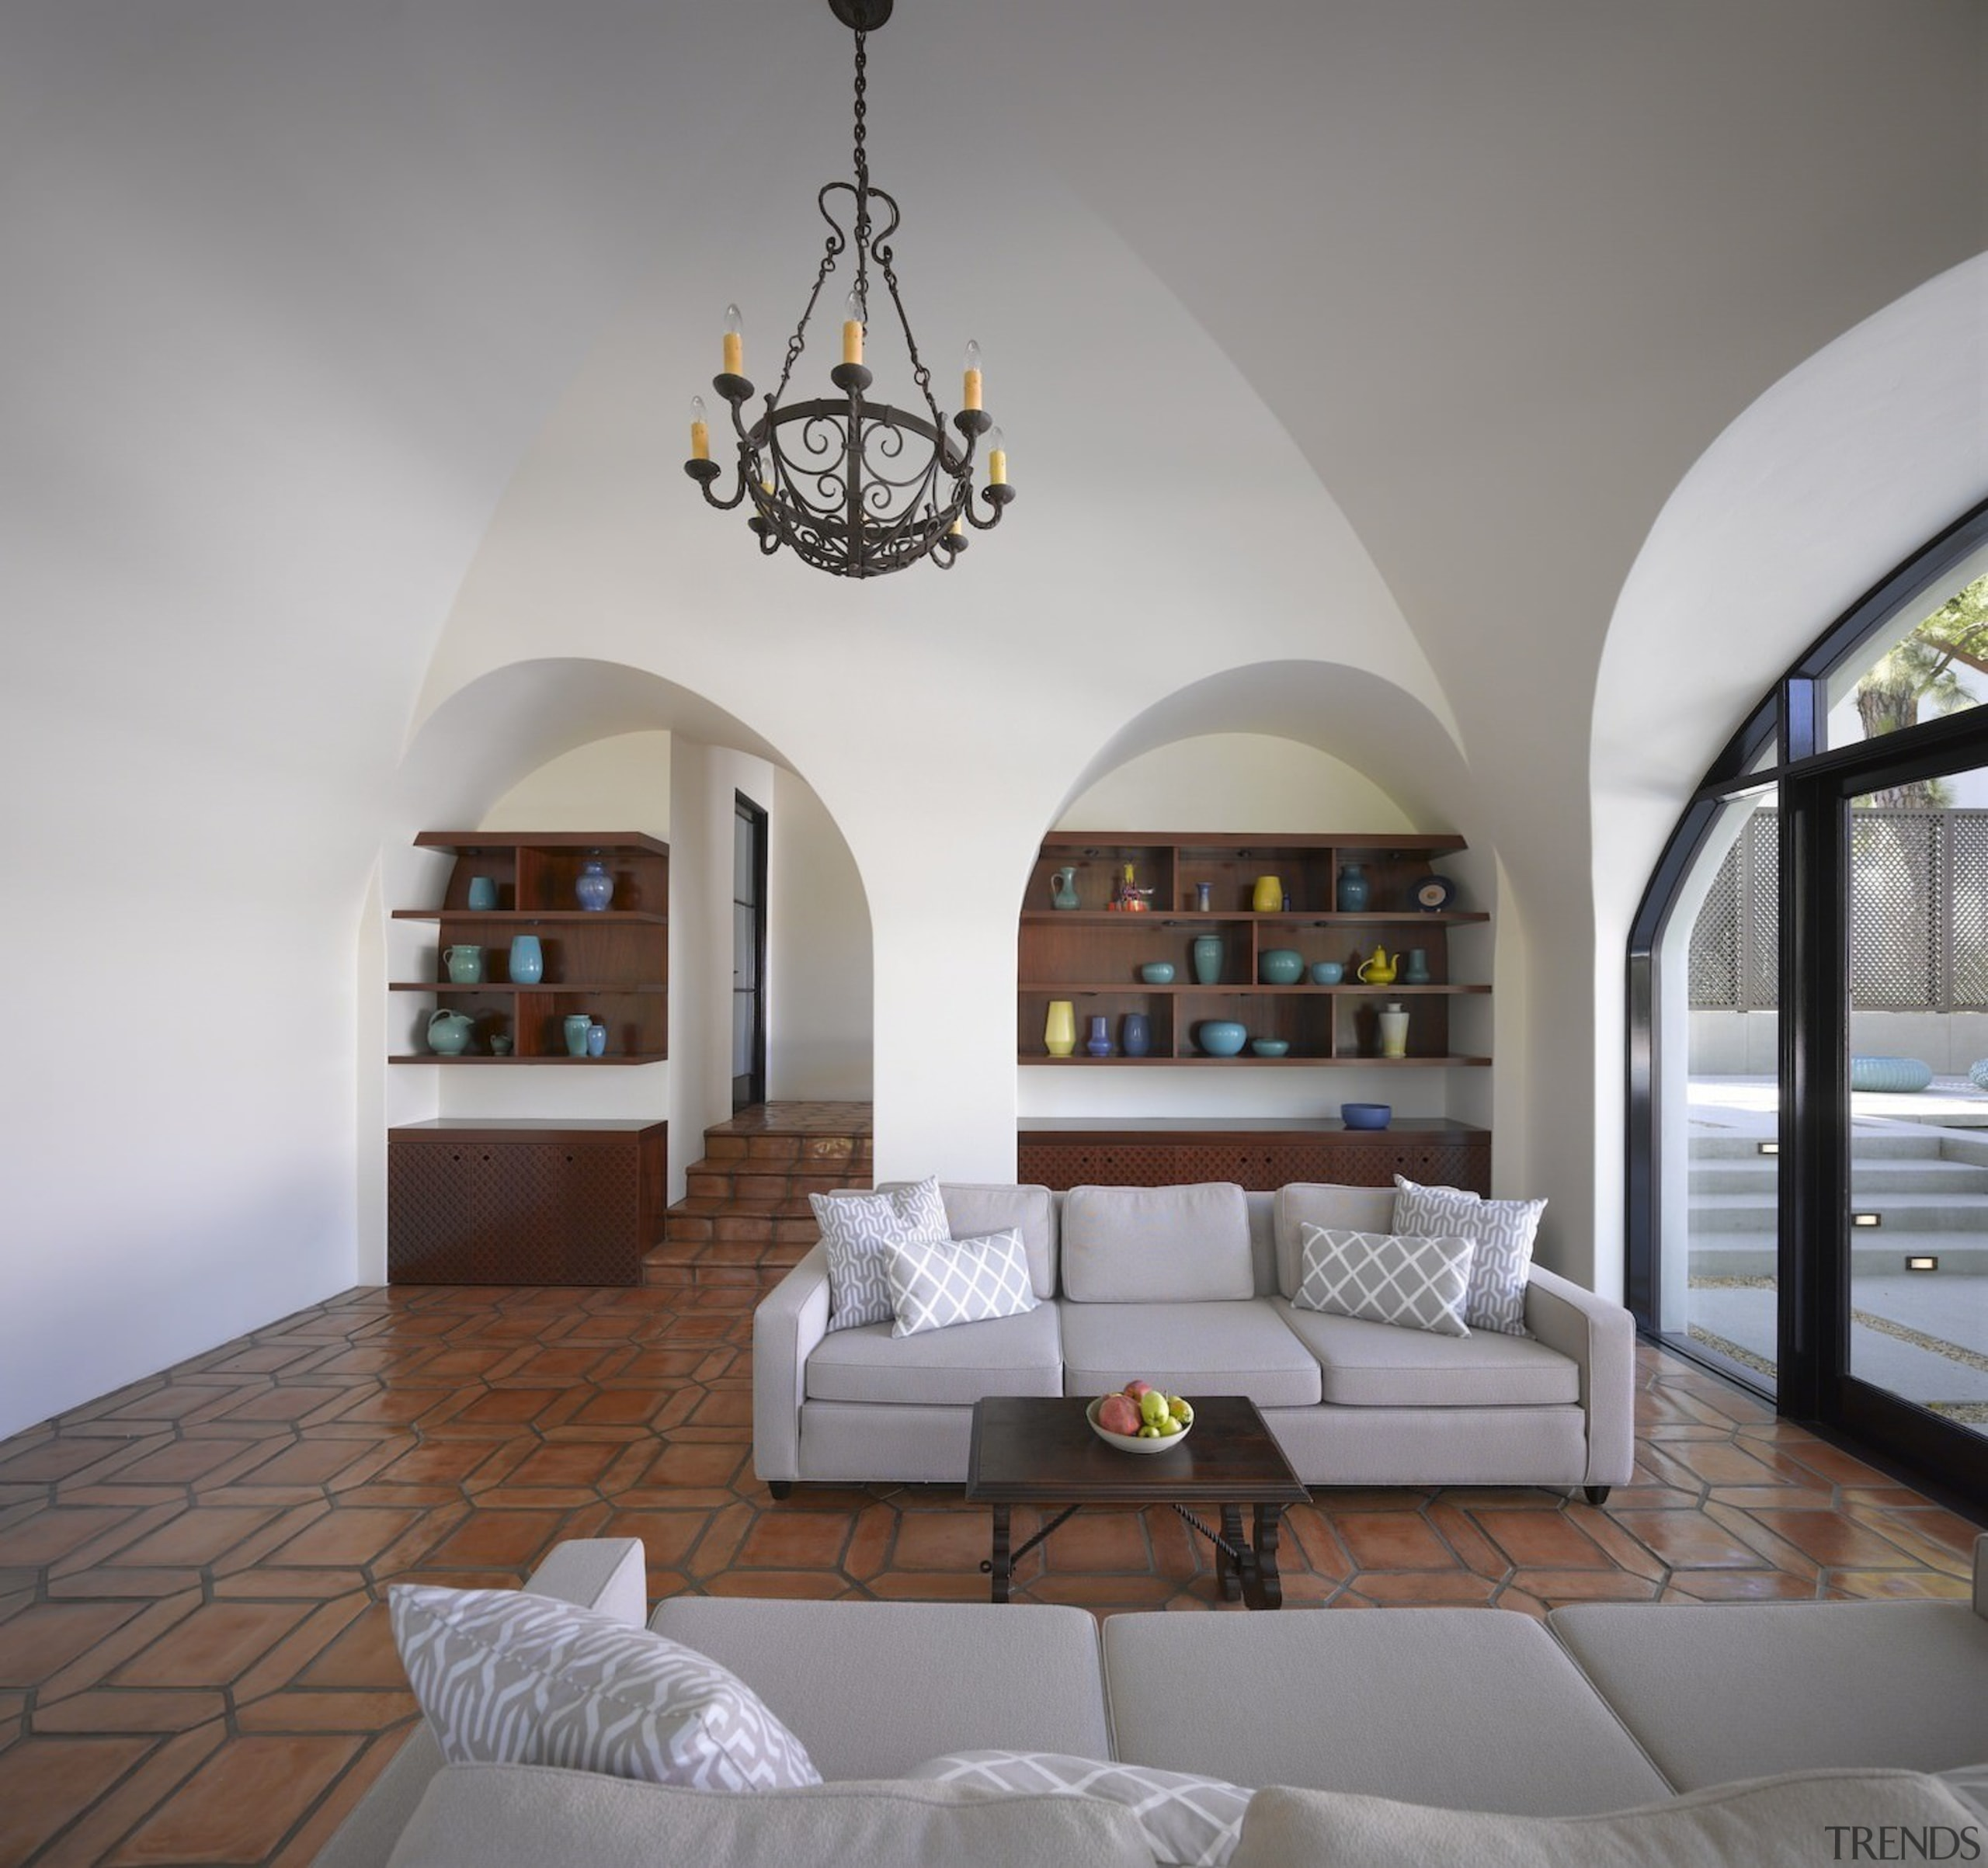 Arched doorways, vaulted ceilings, decorative window grilles and architecture, ceiling, estate, home, interior design, living room, gray